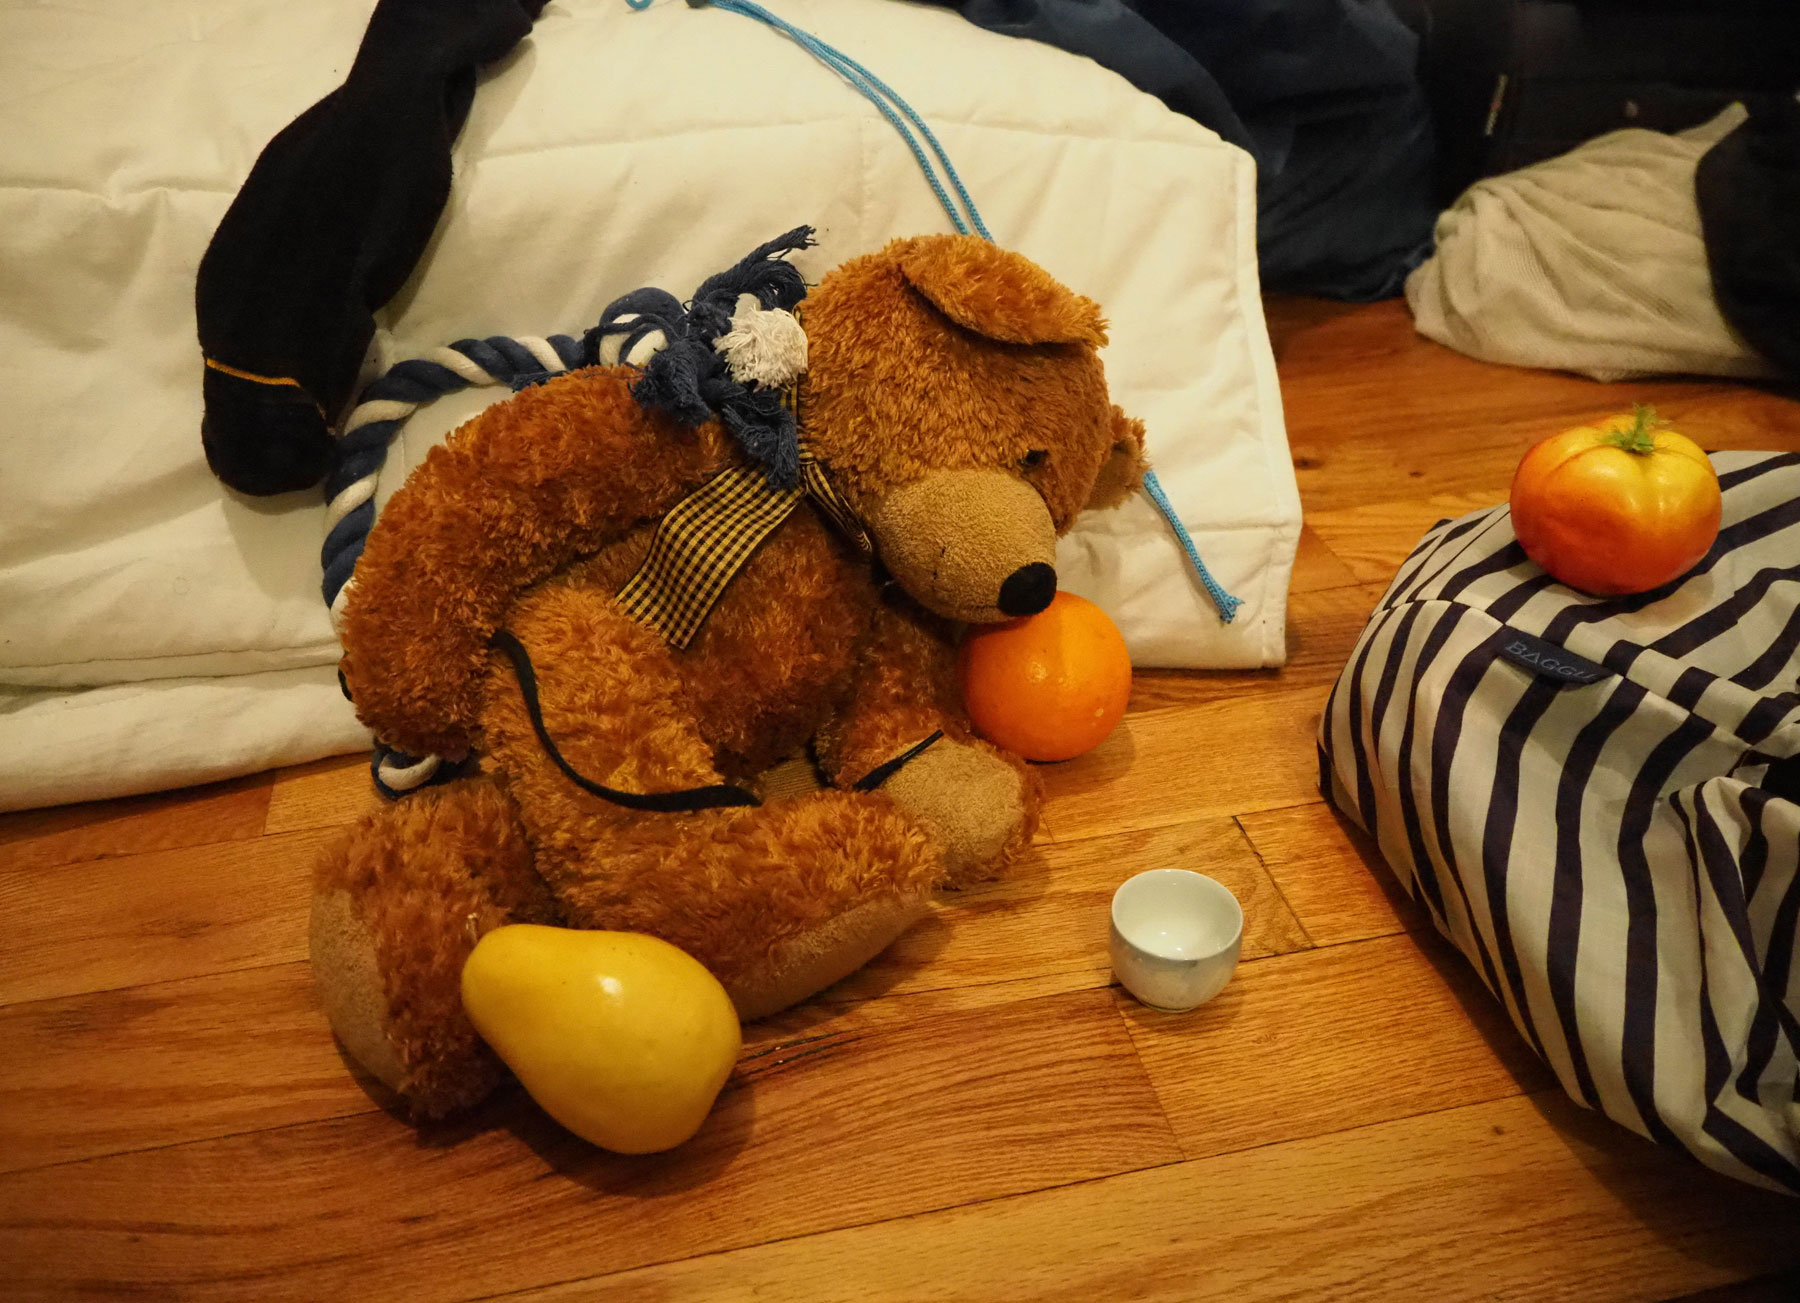 teddy bear and a black sock on hard wood floor with plastic orange and pear and dog chew toy and clothing